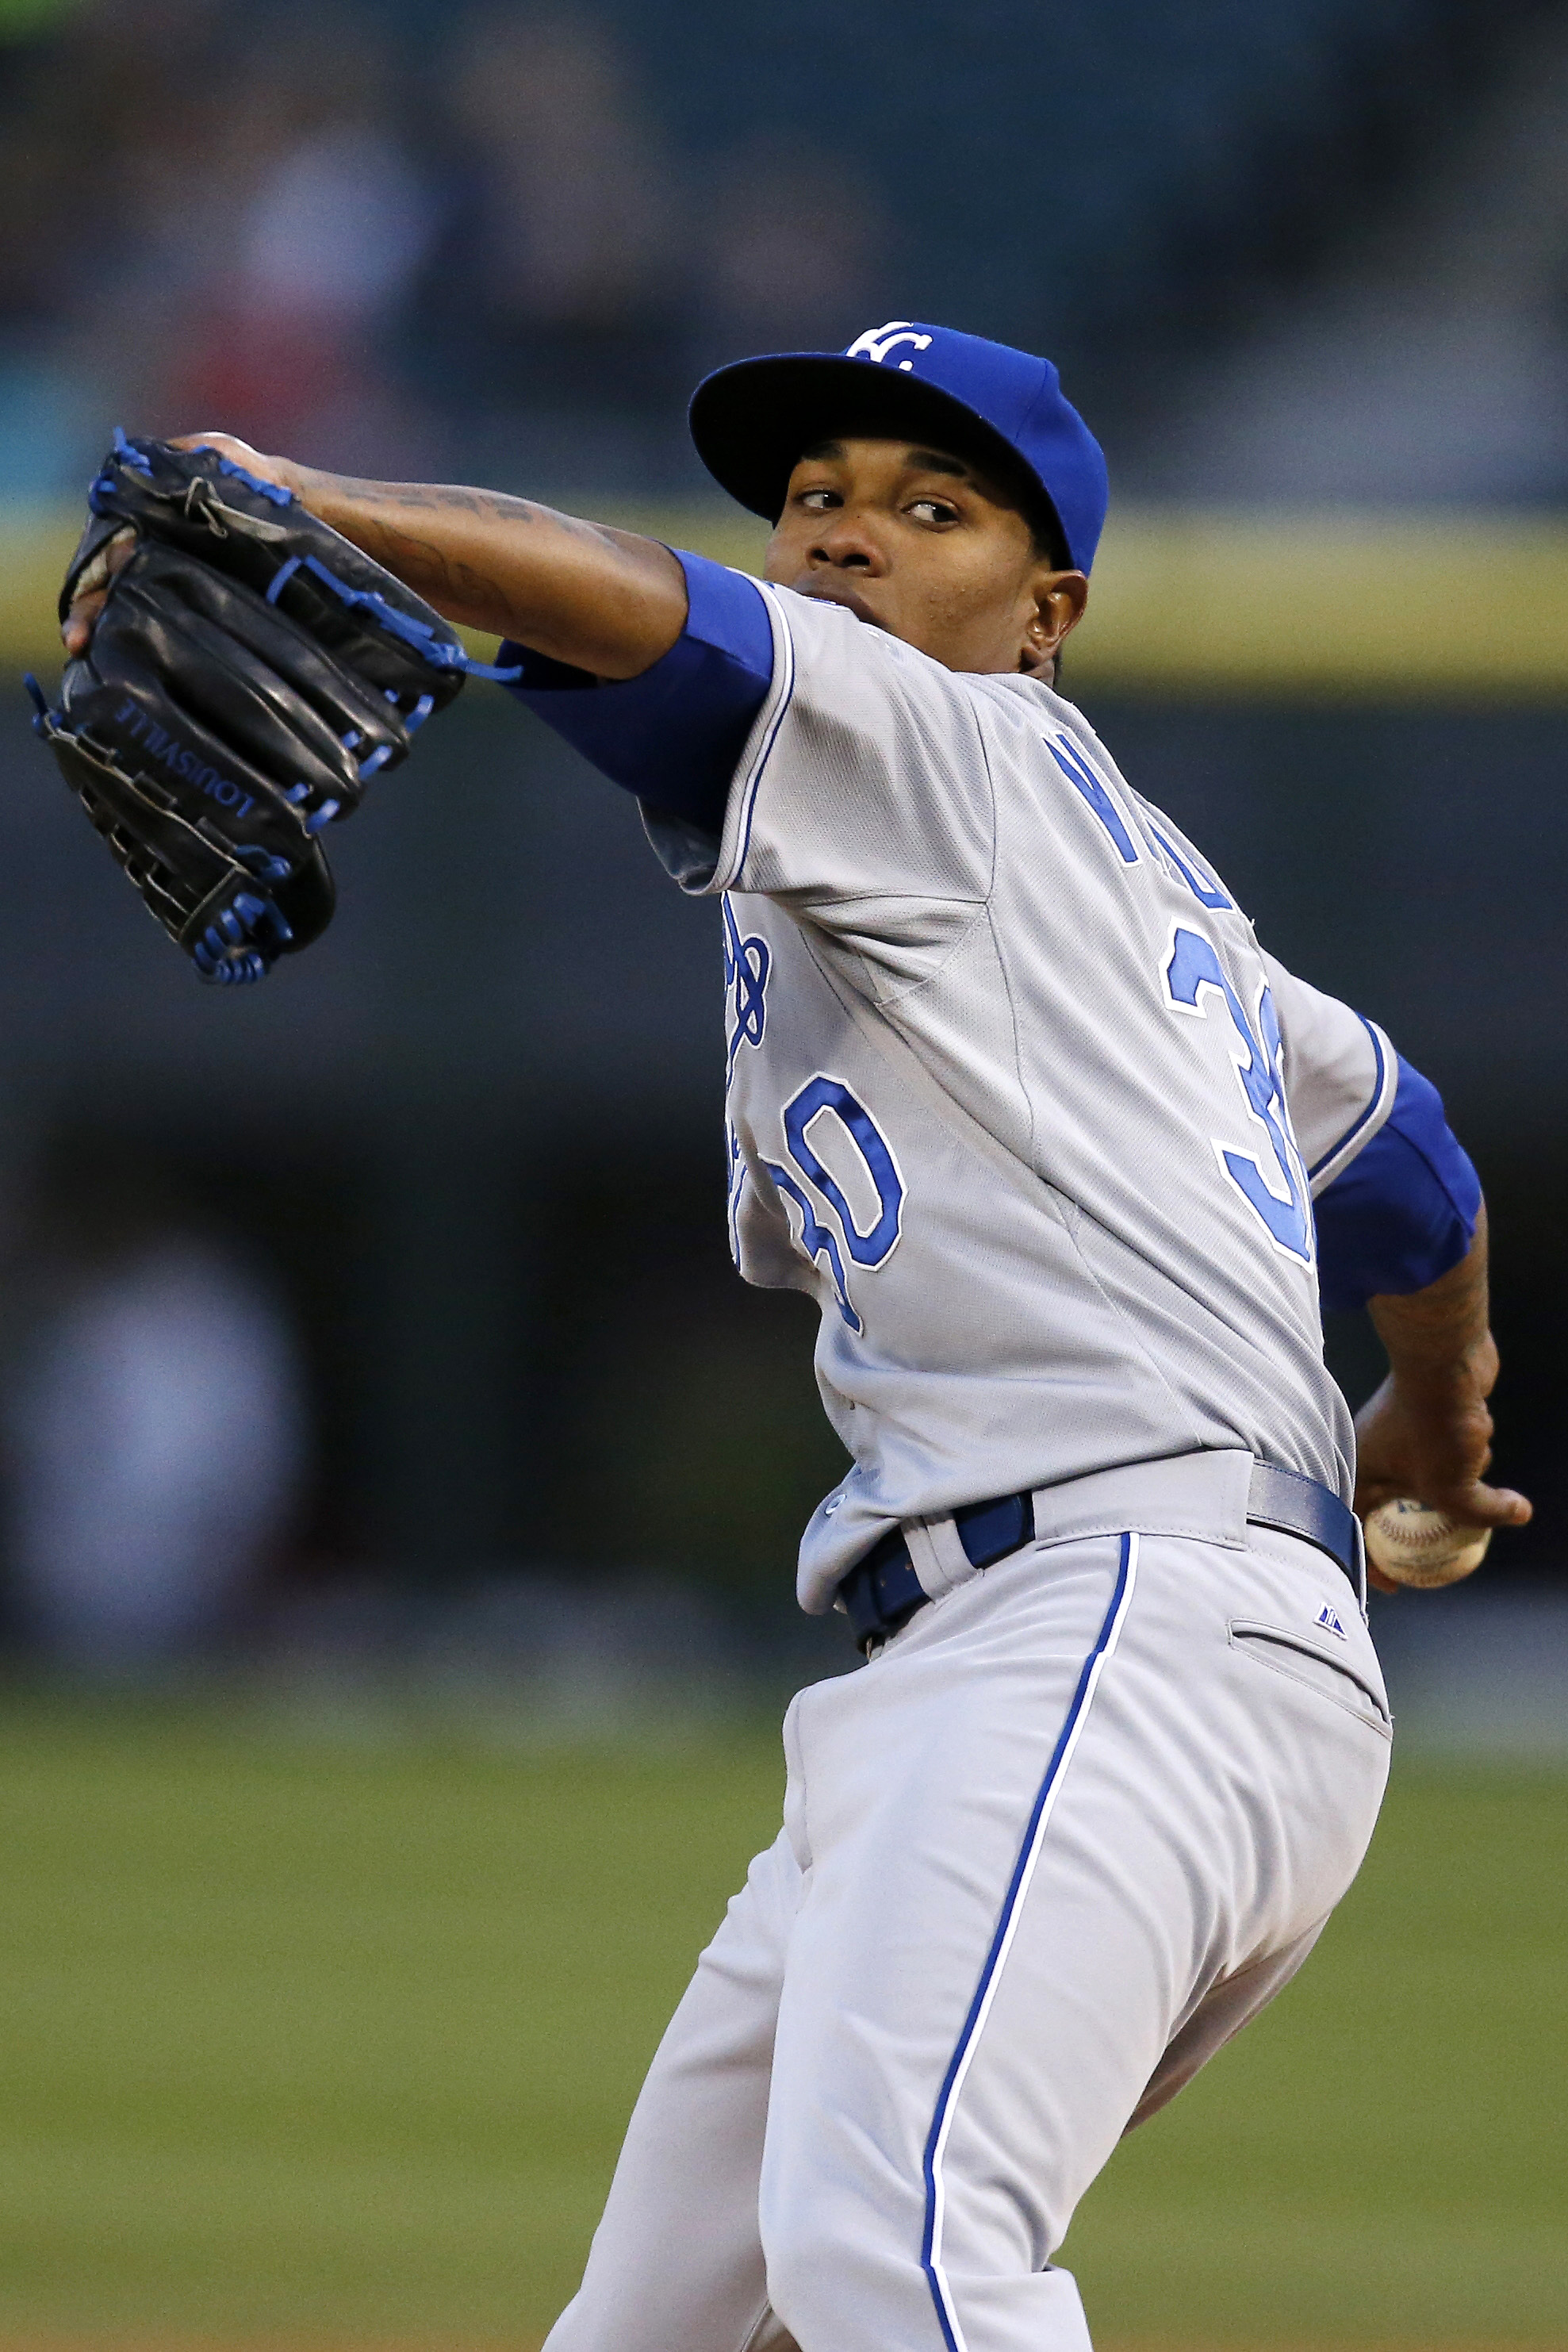 Kansas City Royals starter Yordano Ventura pitches against the Chicago White Sox during the first inning of a baseball game Thursday, April 23, 2015, in Chicago. (AP Photo/Andrew A. Nelles)